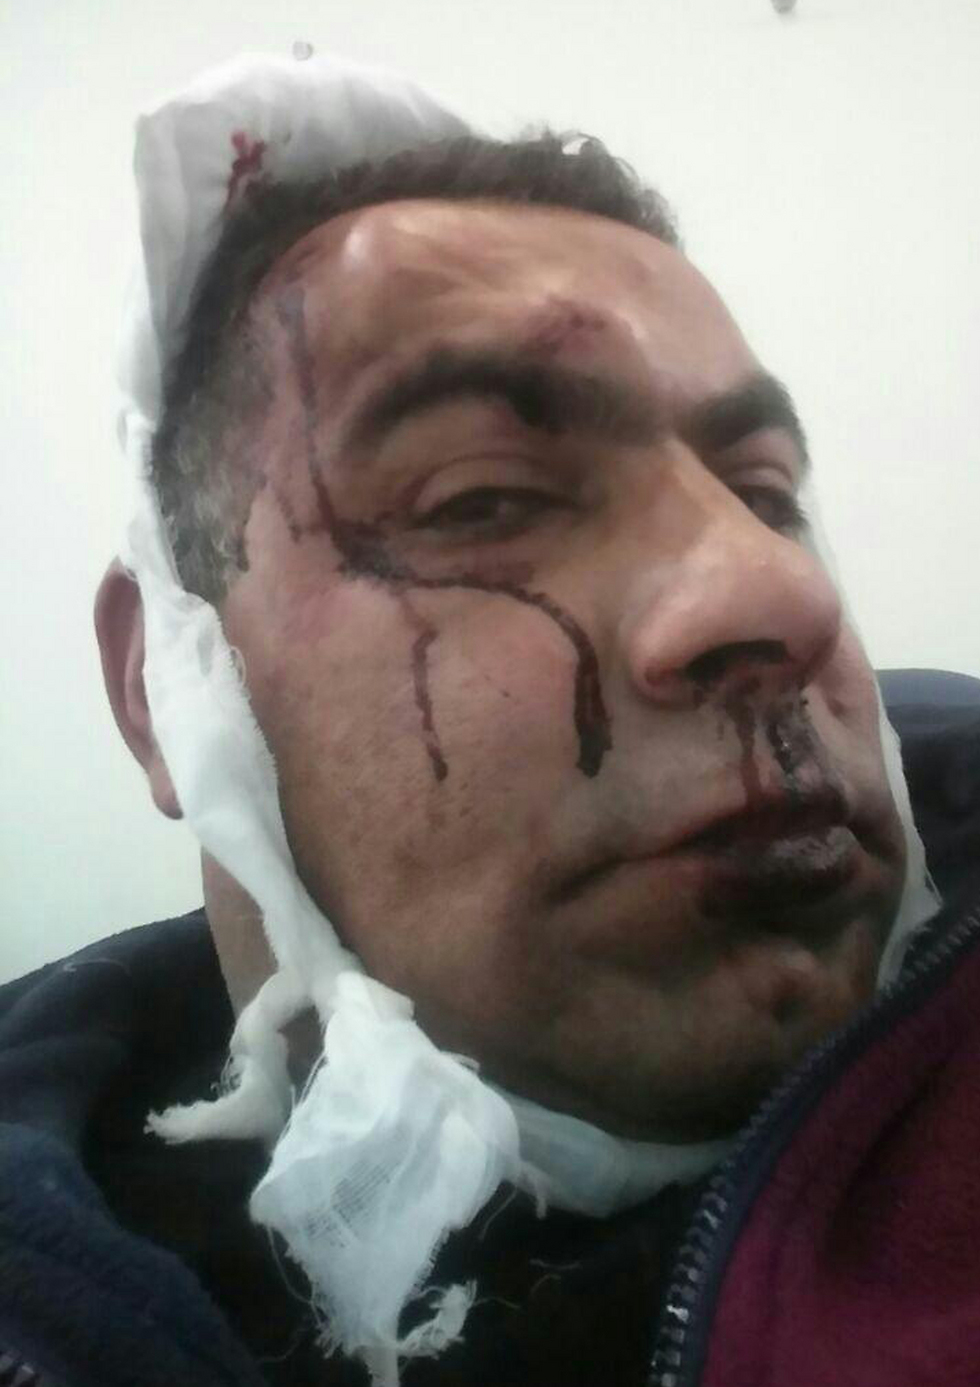 Fadi Abed after the attack